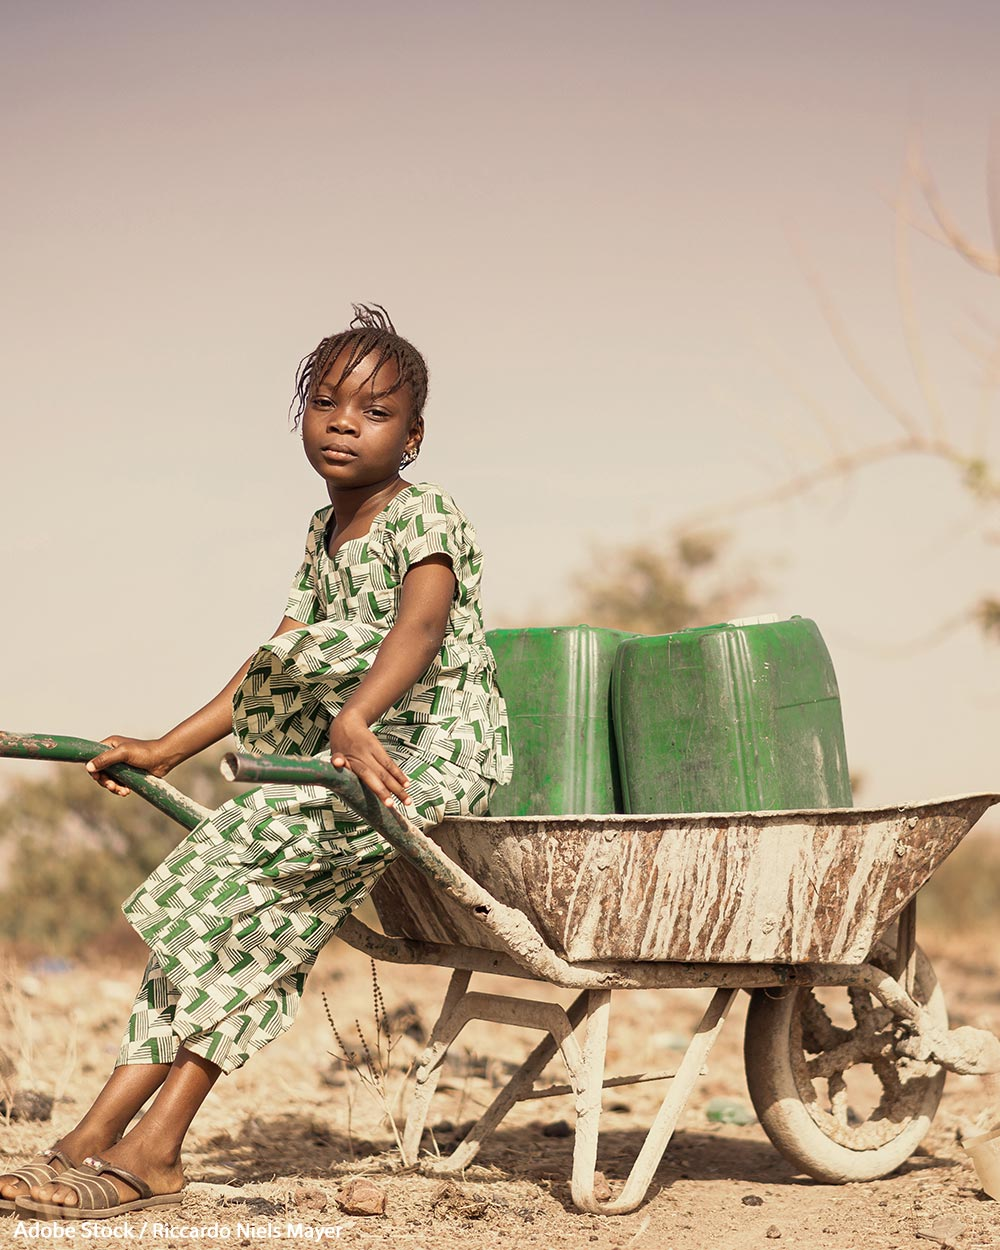 Global climate change is causing water shortages worldwide.